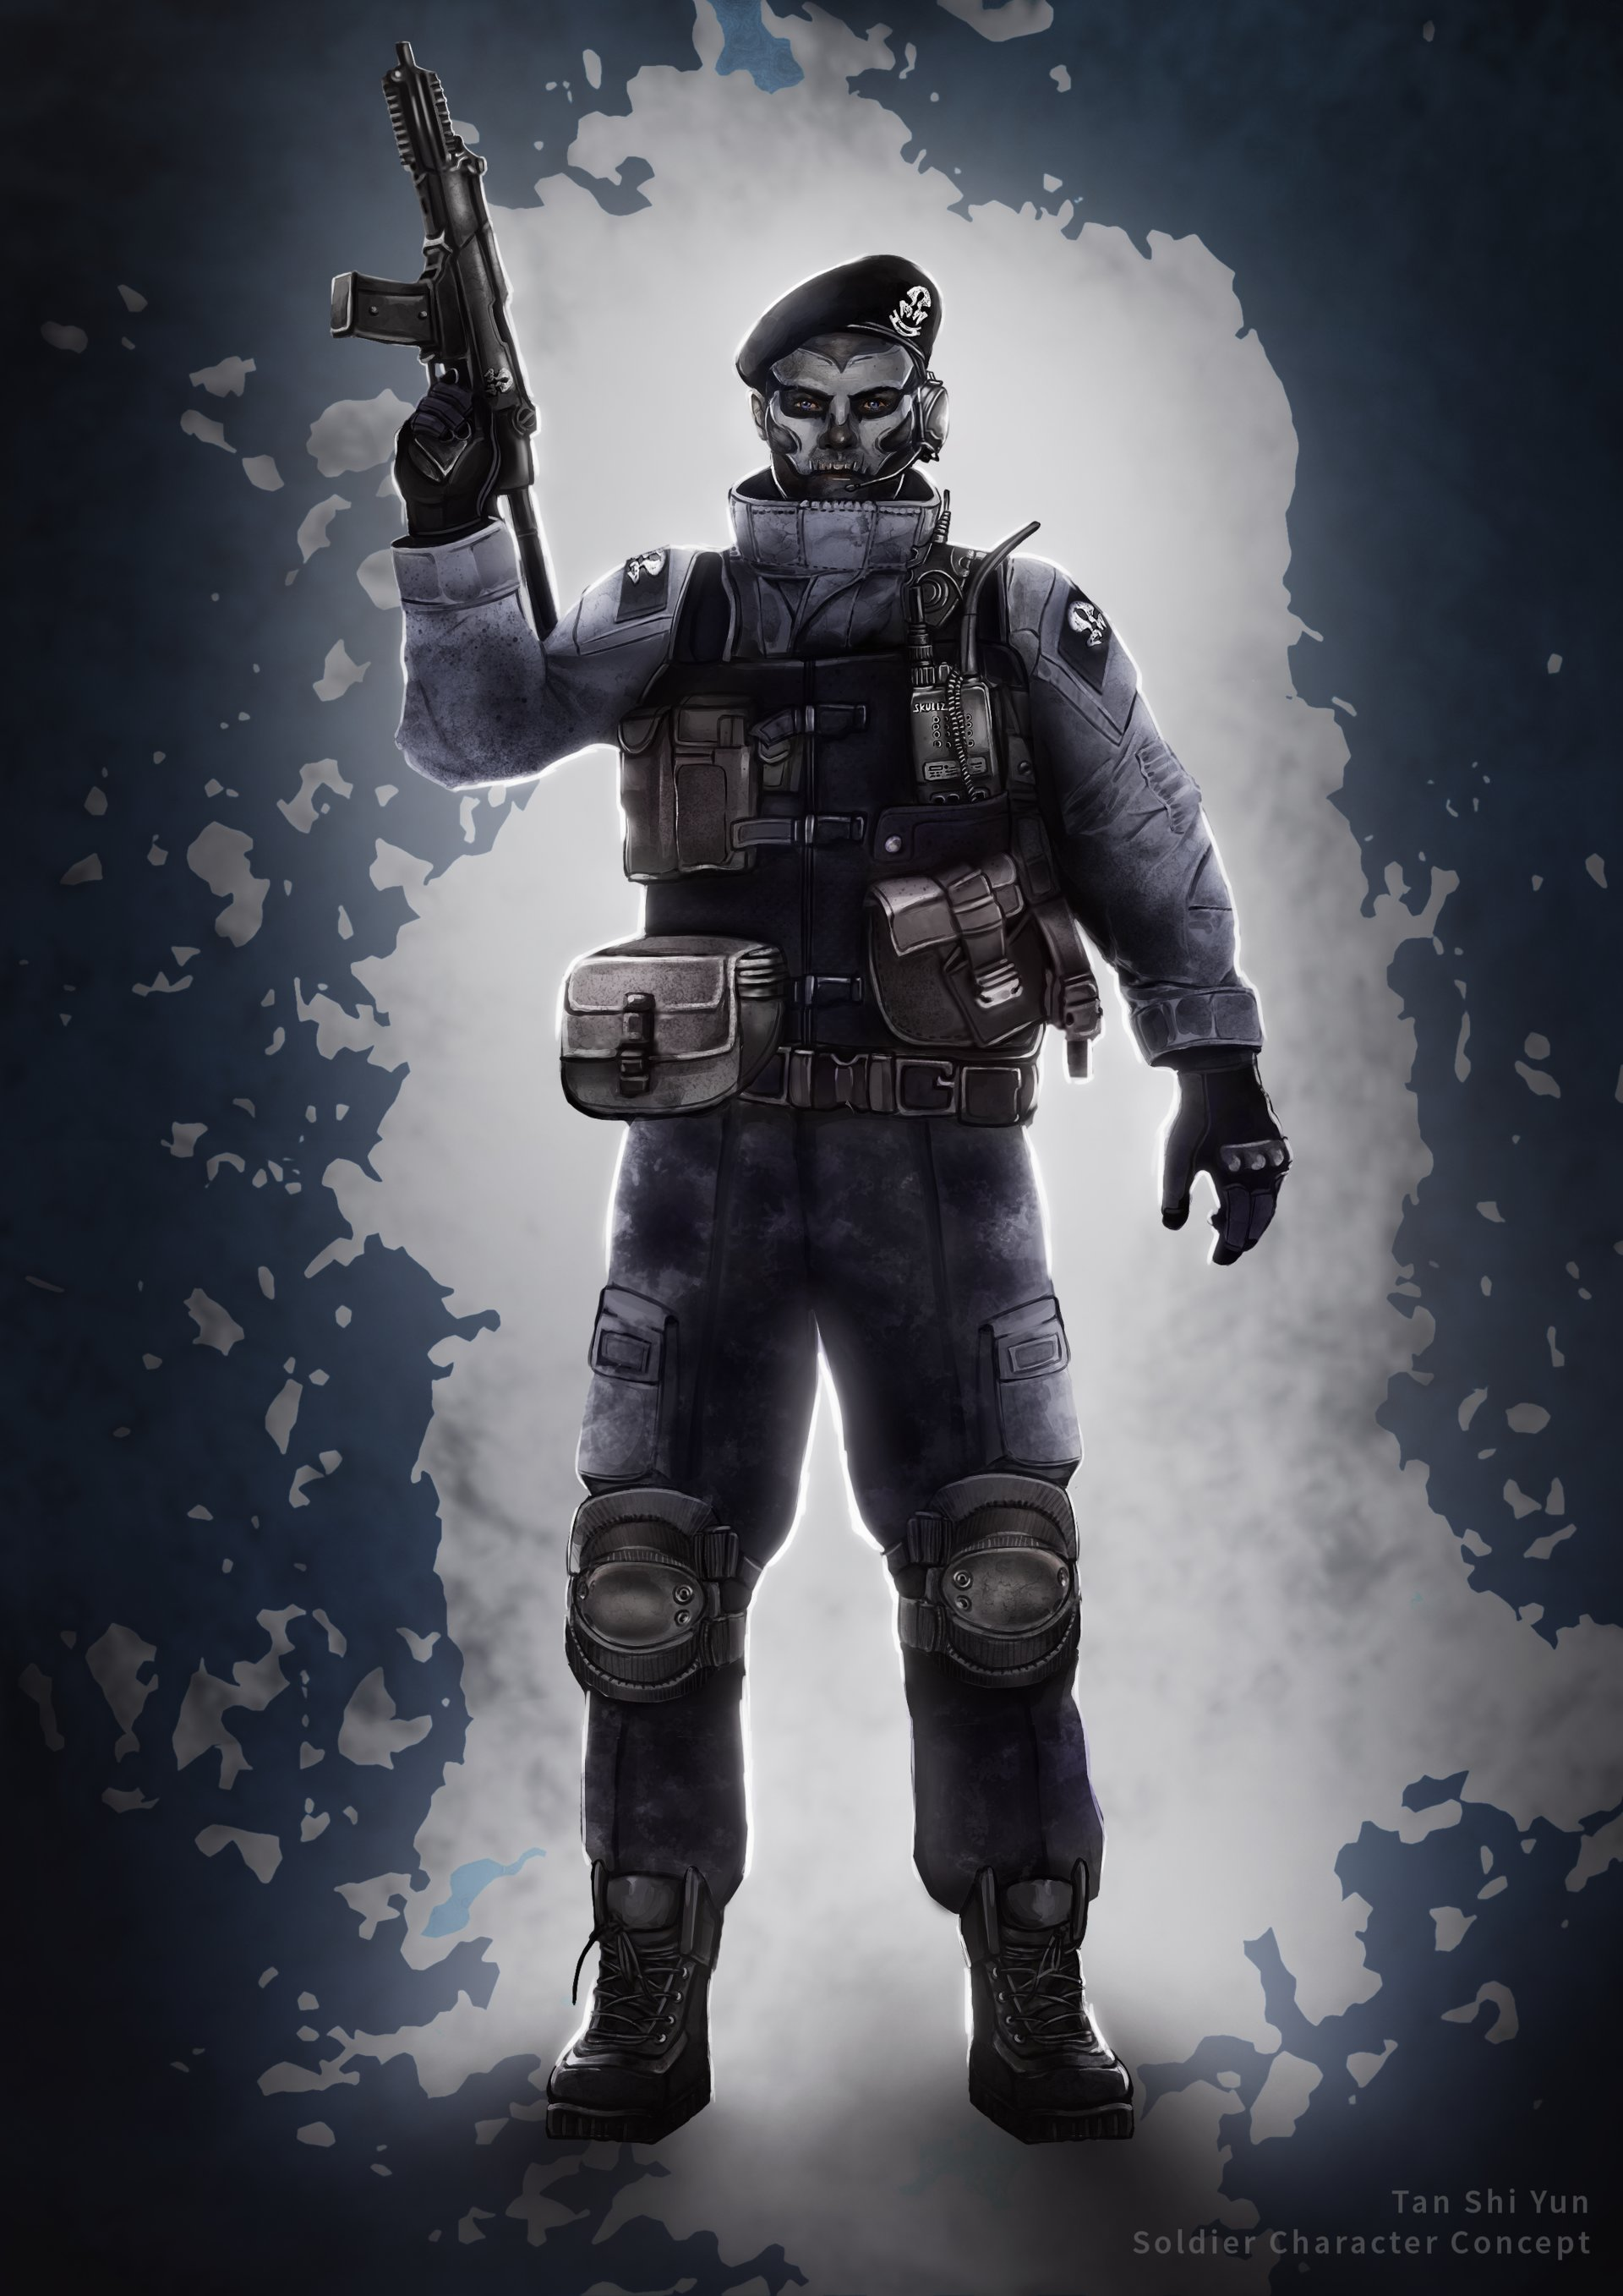 Tan shi yun cod ghost soldier spinoff tan shi yun soldier done sciox Image collections